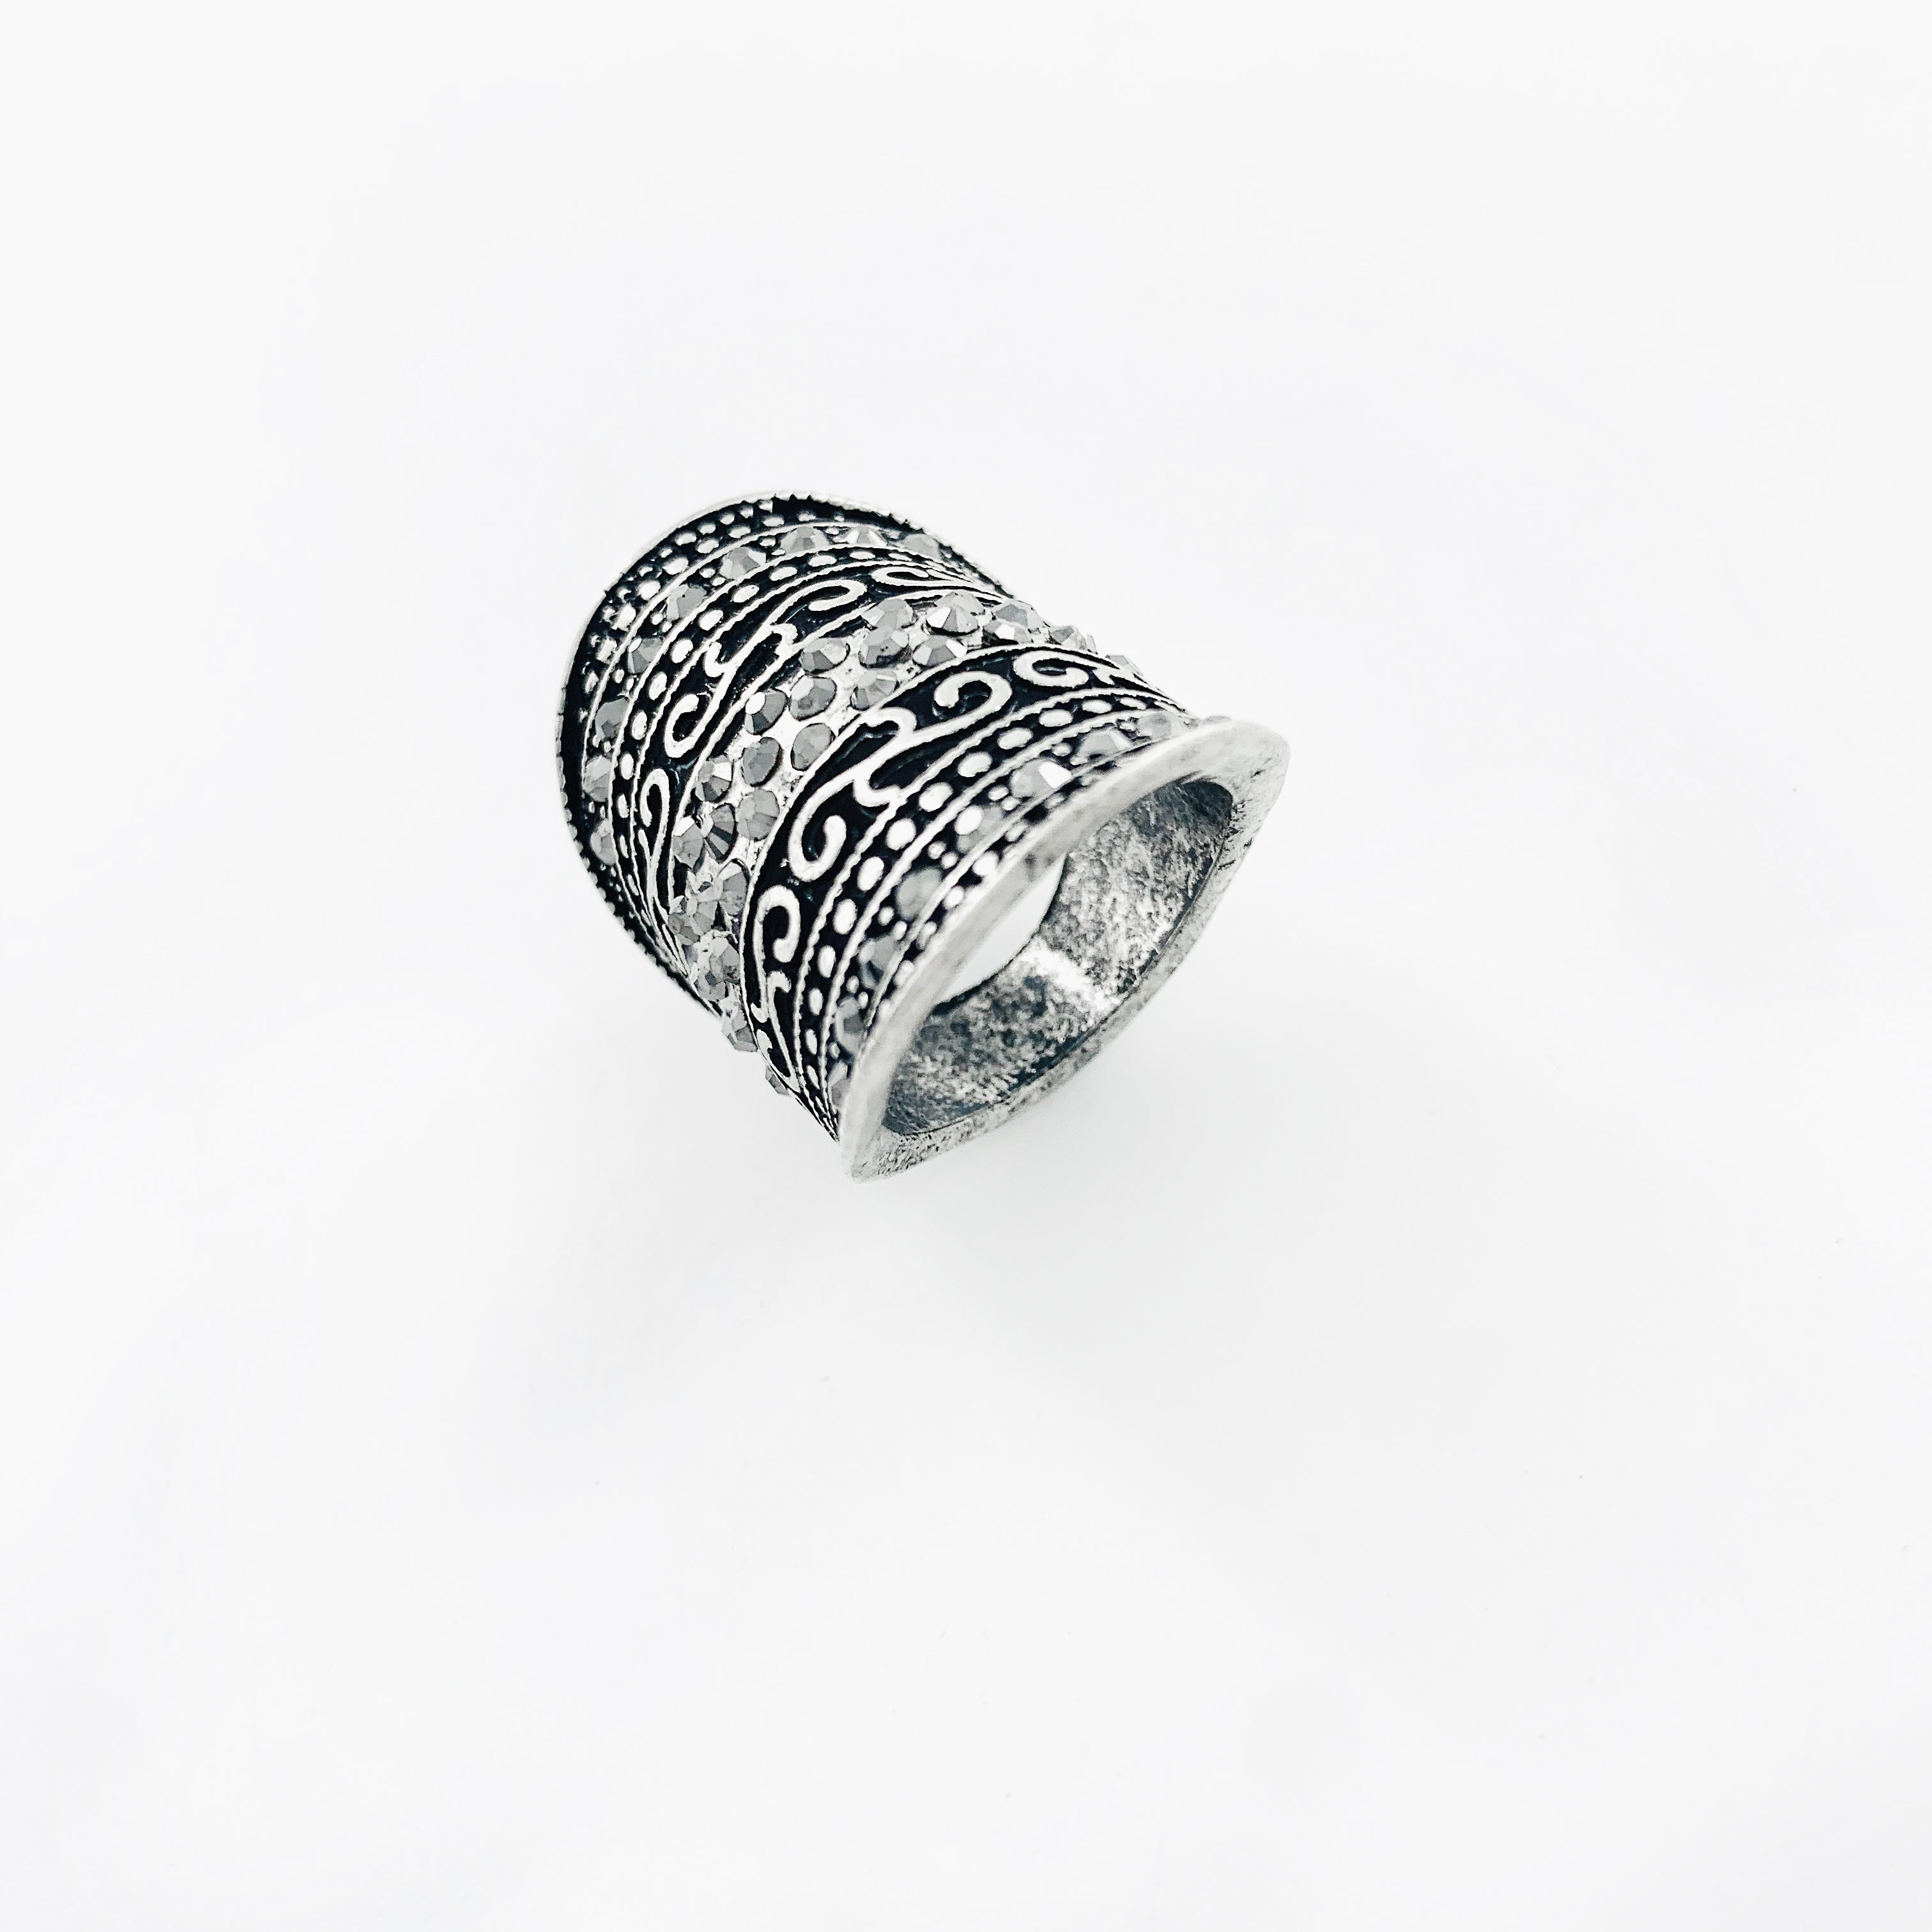 Art-deco inspired black and silver ring